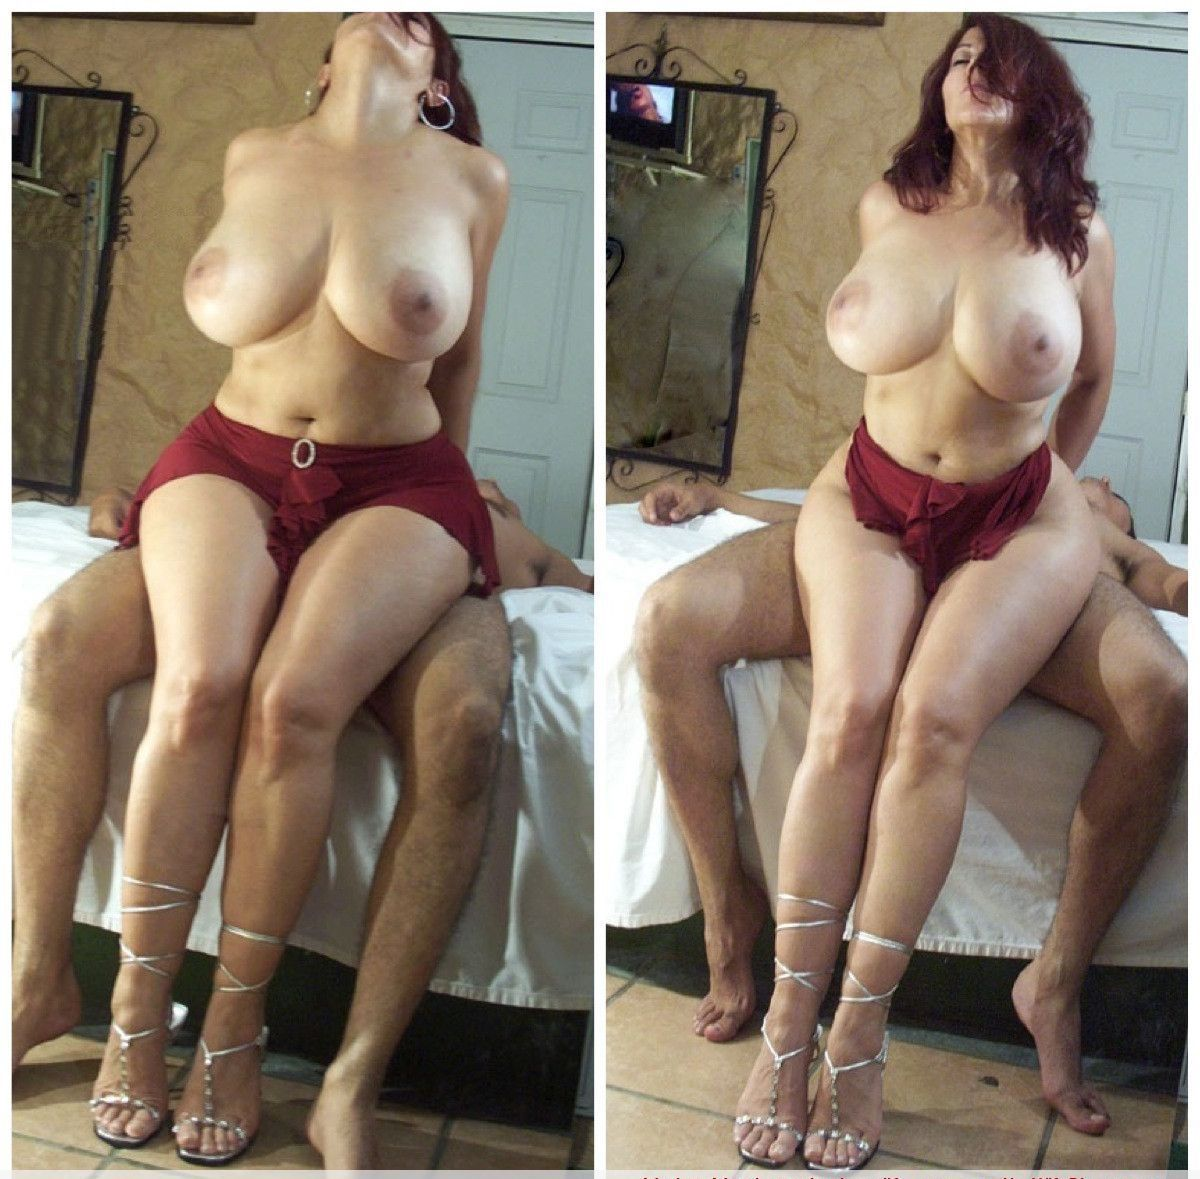 [Curvy Amateurs] Sexy MILF Of Your Dreams!